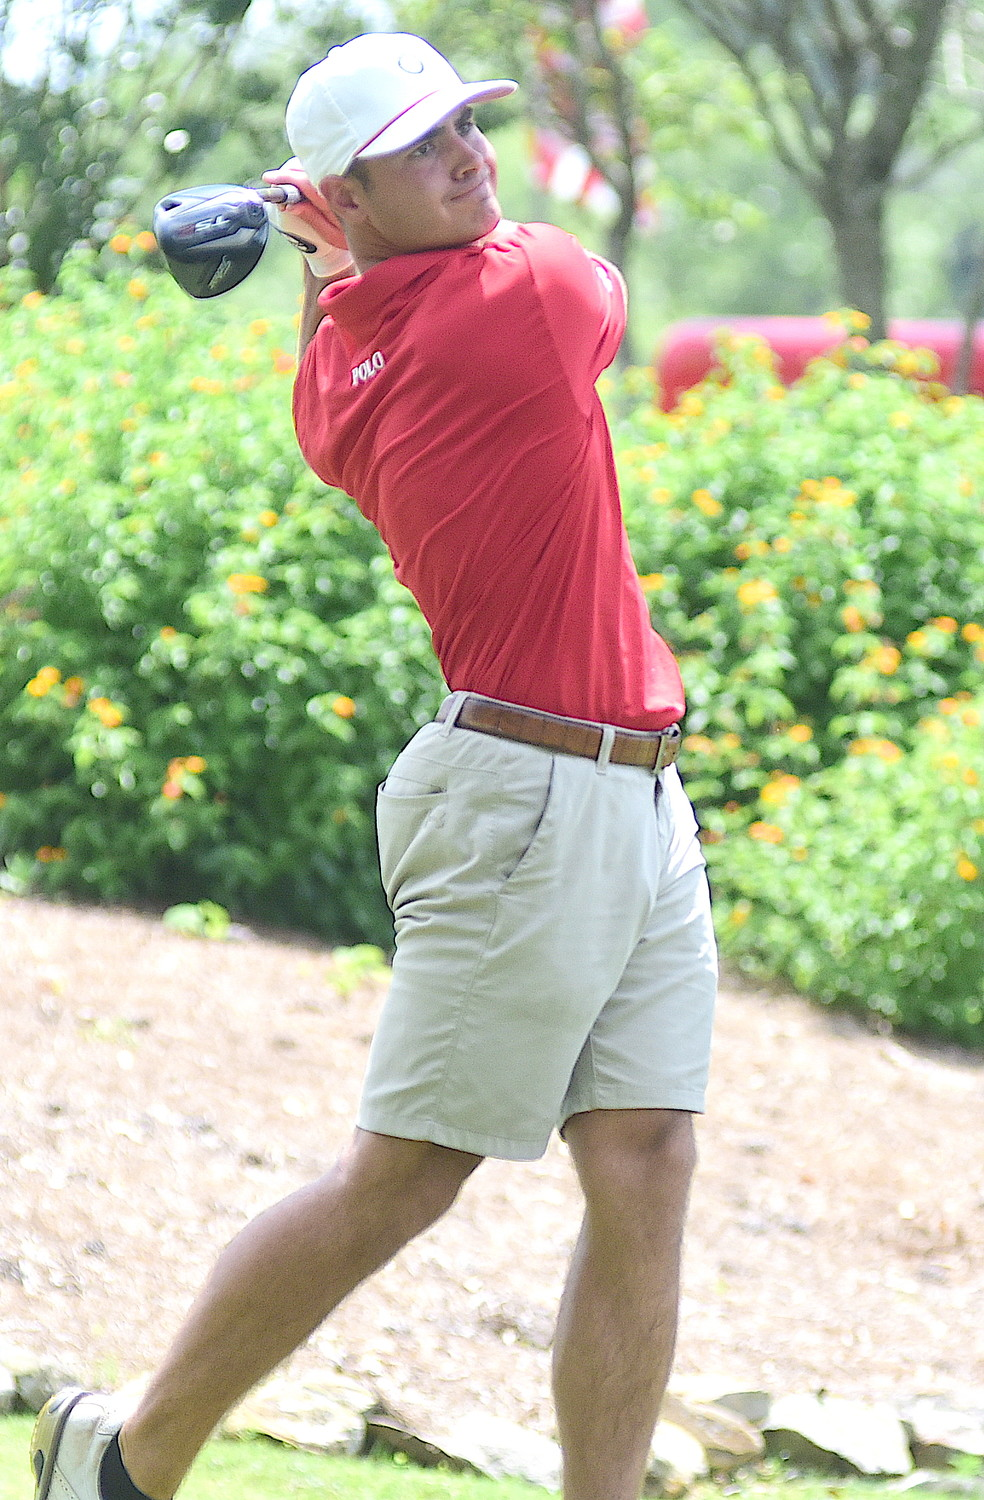 Sam Goldasich shot a 67 on Saturday and is tied for the lead going into today's final round of the Travis Hudson/Bernard Weinstein Invitational at Musgrove Country Club.